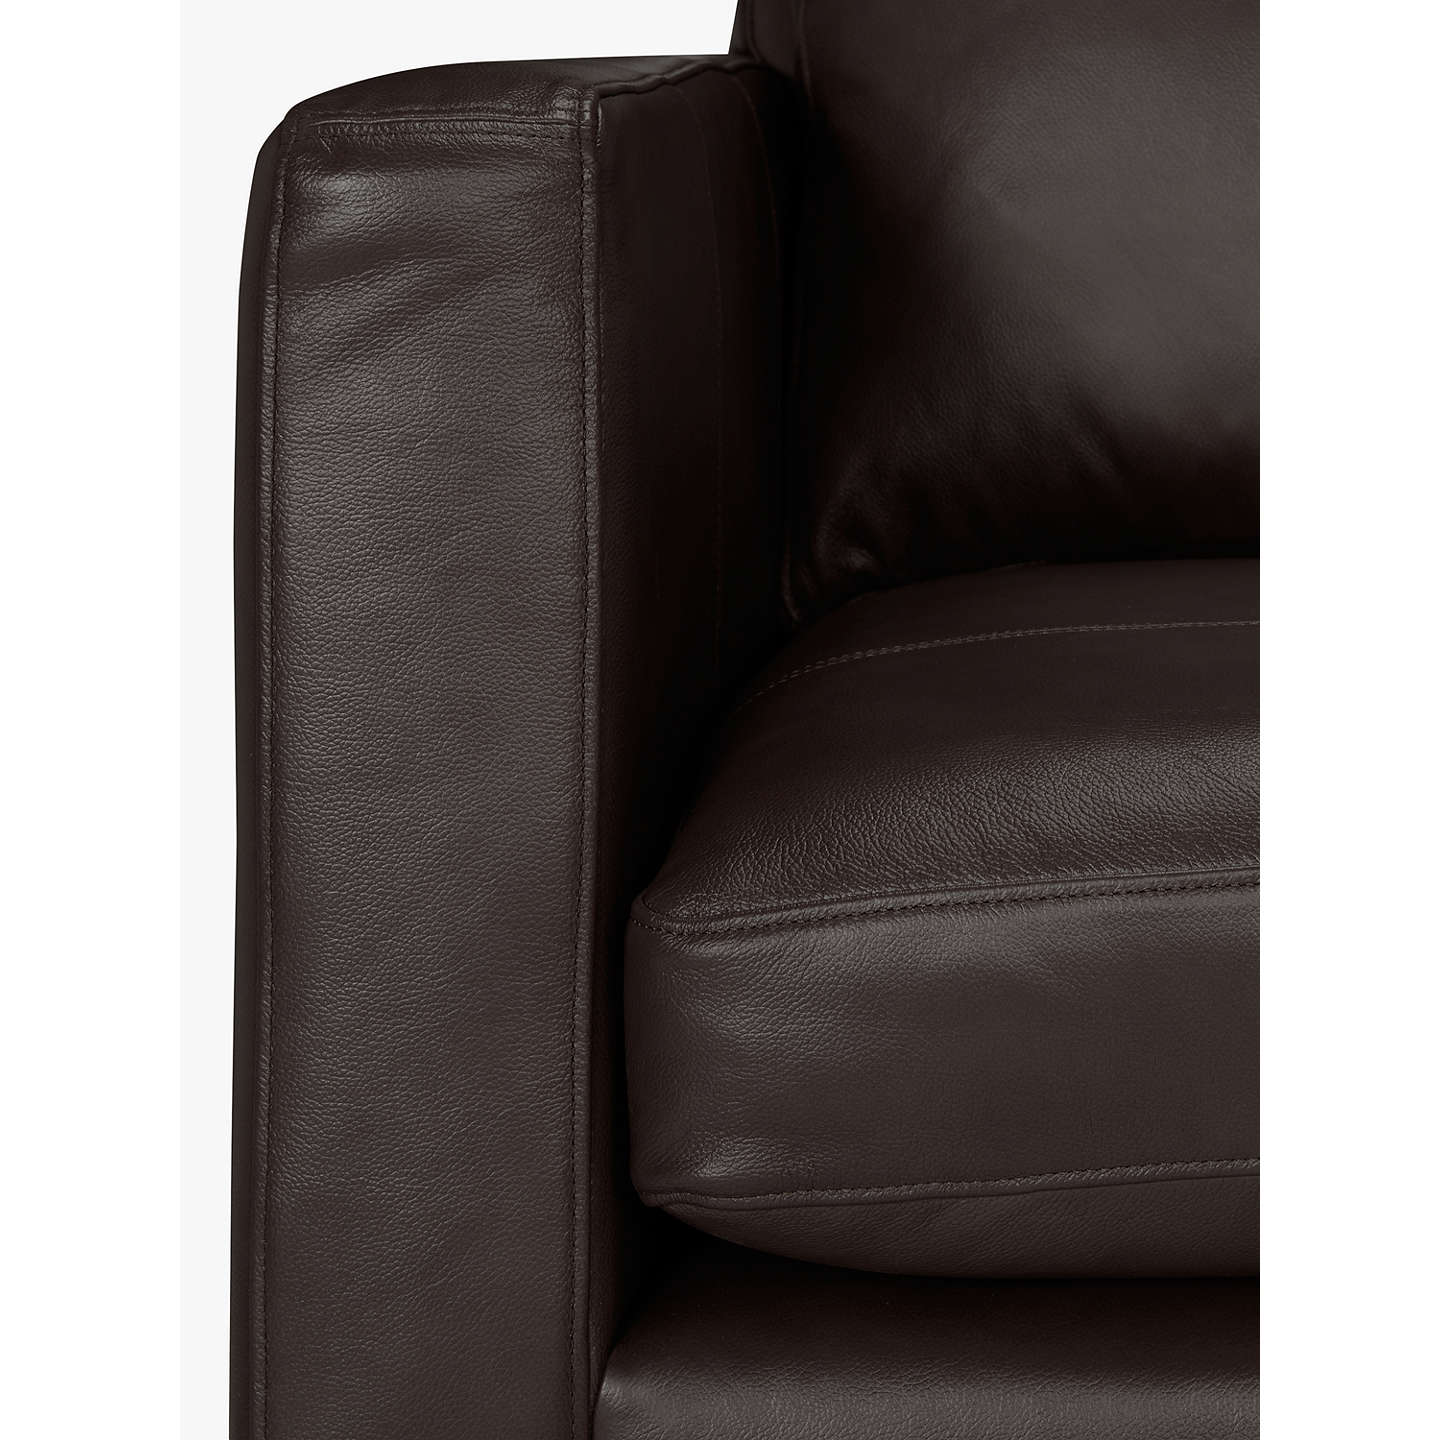 BuyJohn Lewis Bailey Leather RHF Chaise End Sofa, Dark Leg, Demetra Charcoal Online at johnlewis.com